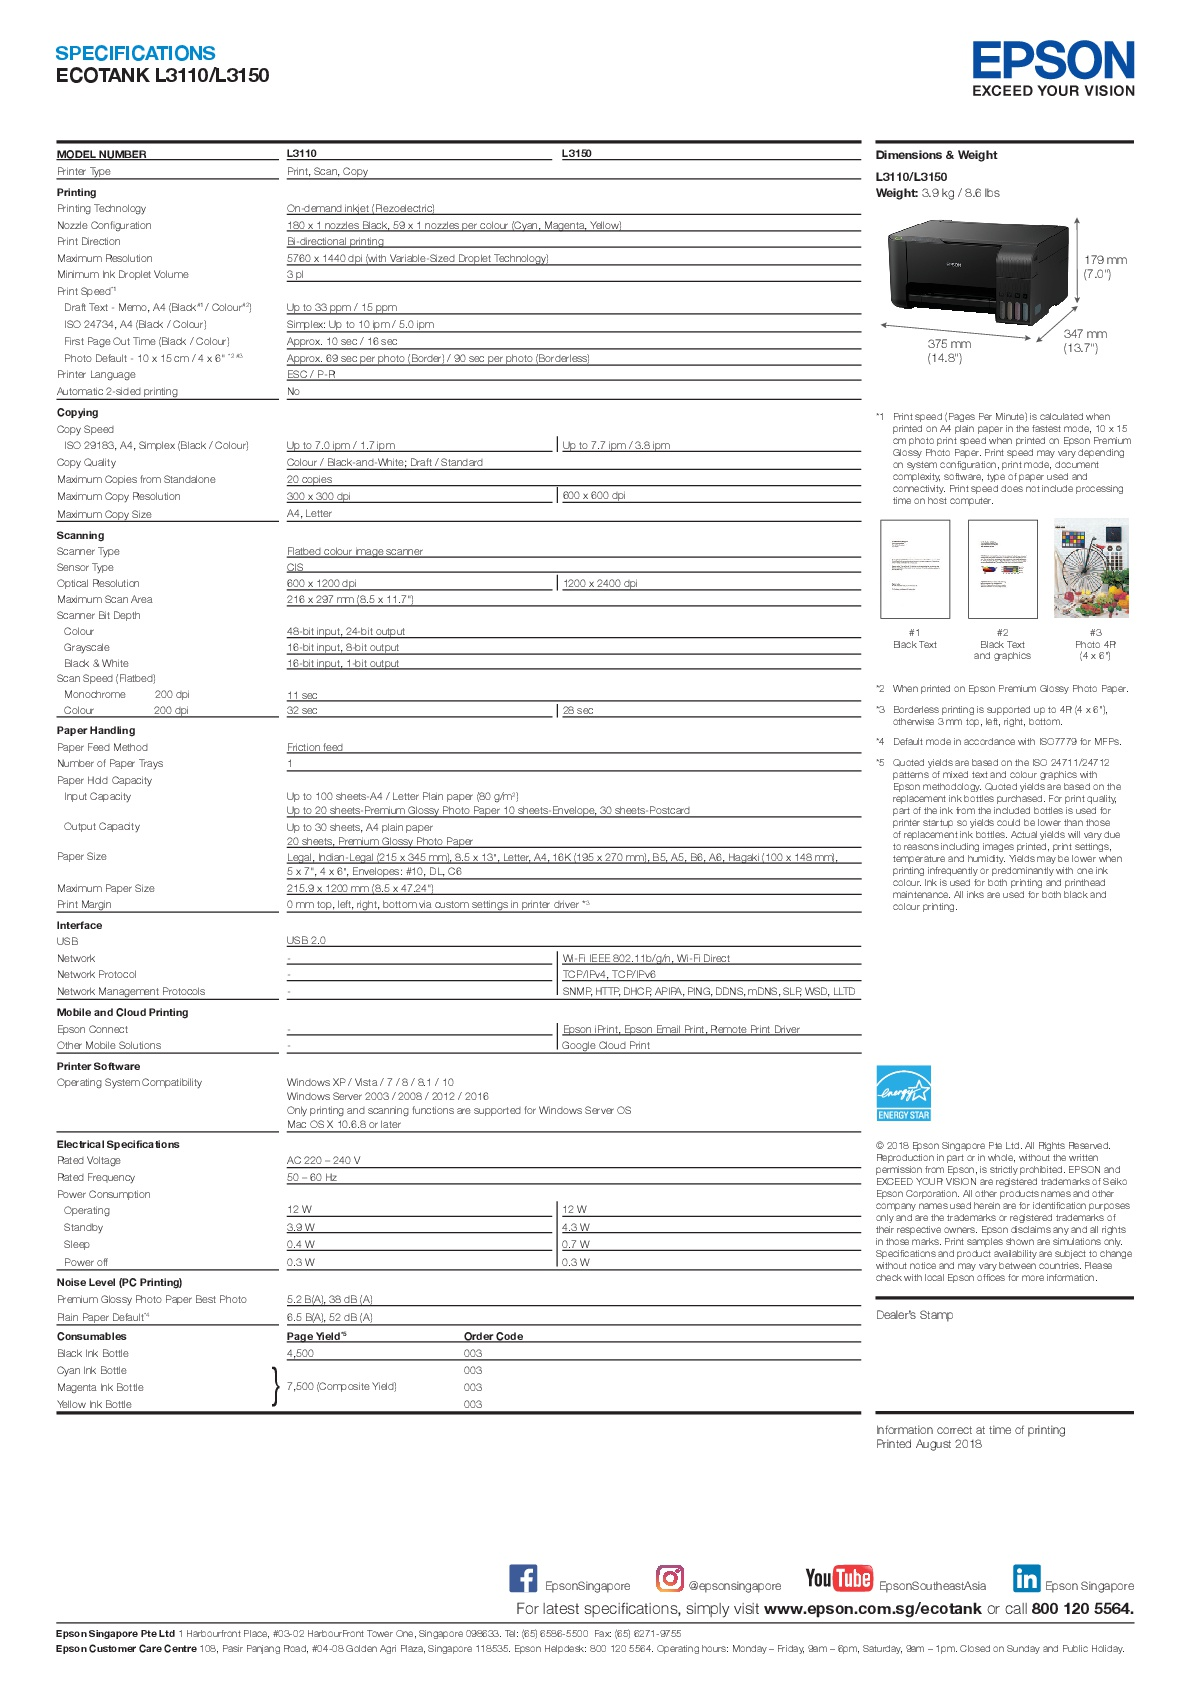 [Local Warranty] Epson EcoTank L3150 All-in-One Ink Tank Printer